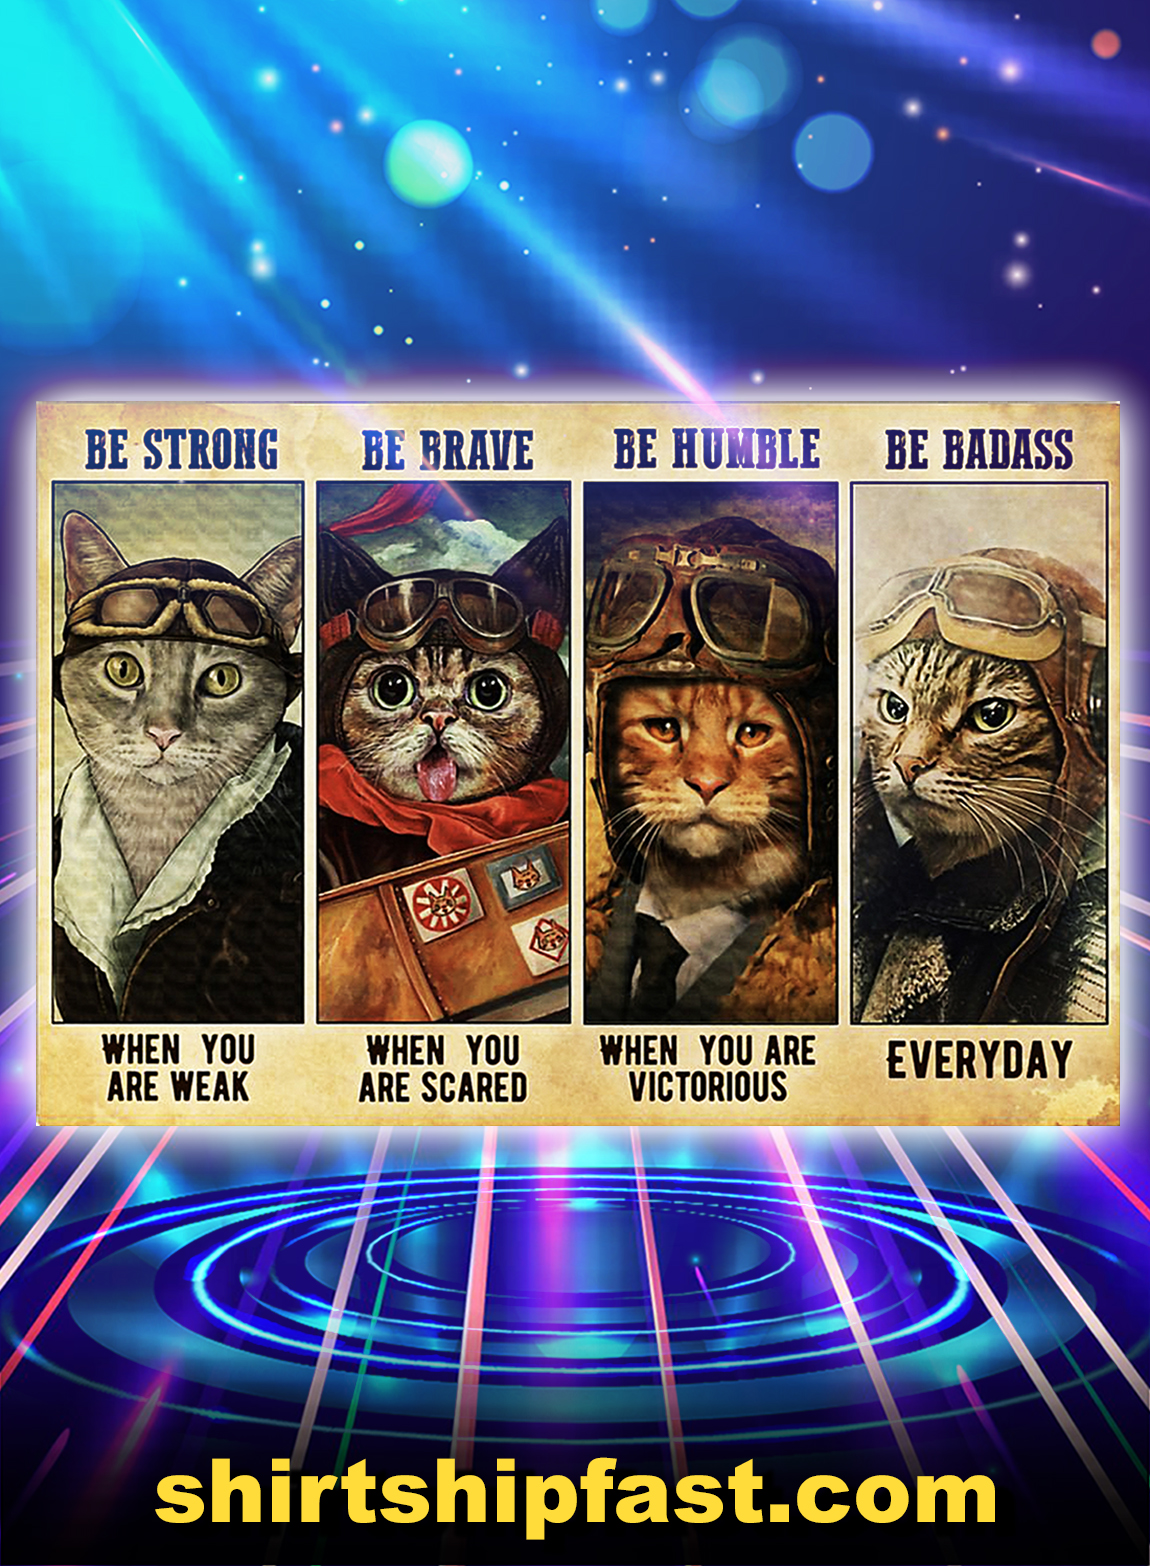 Be strong be brave be humble be badass cat pilot poster - A2